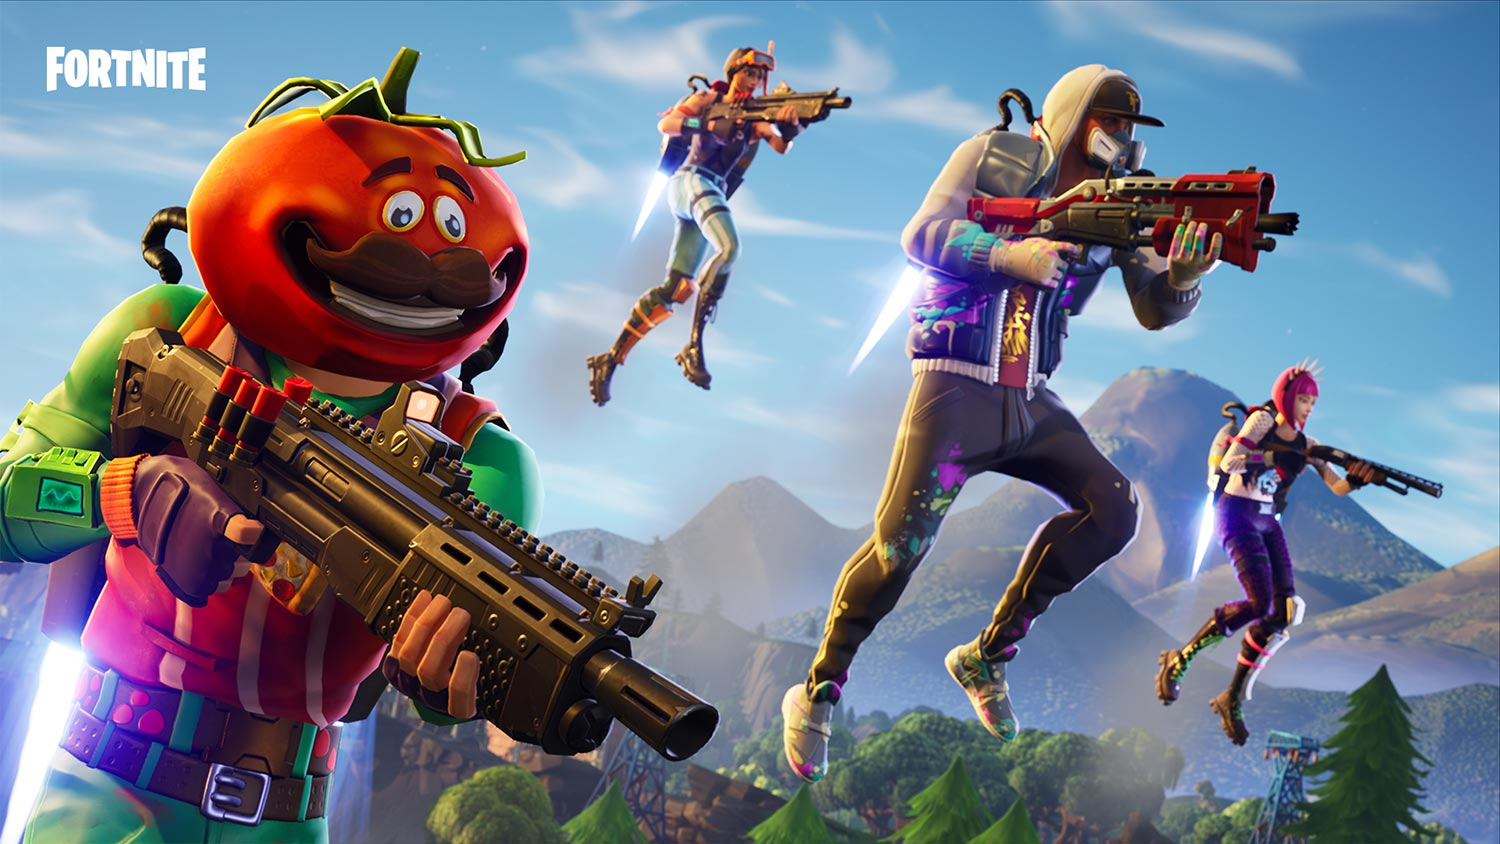 3 Fakta Tentang Fortnite, Game Battle Royale Saingan PUBG